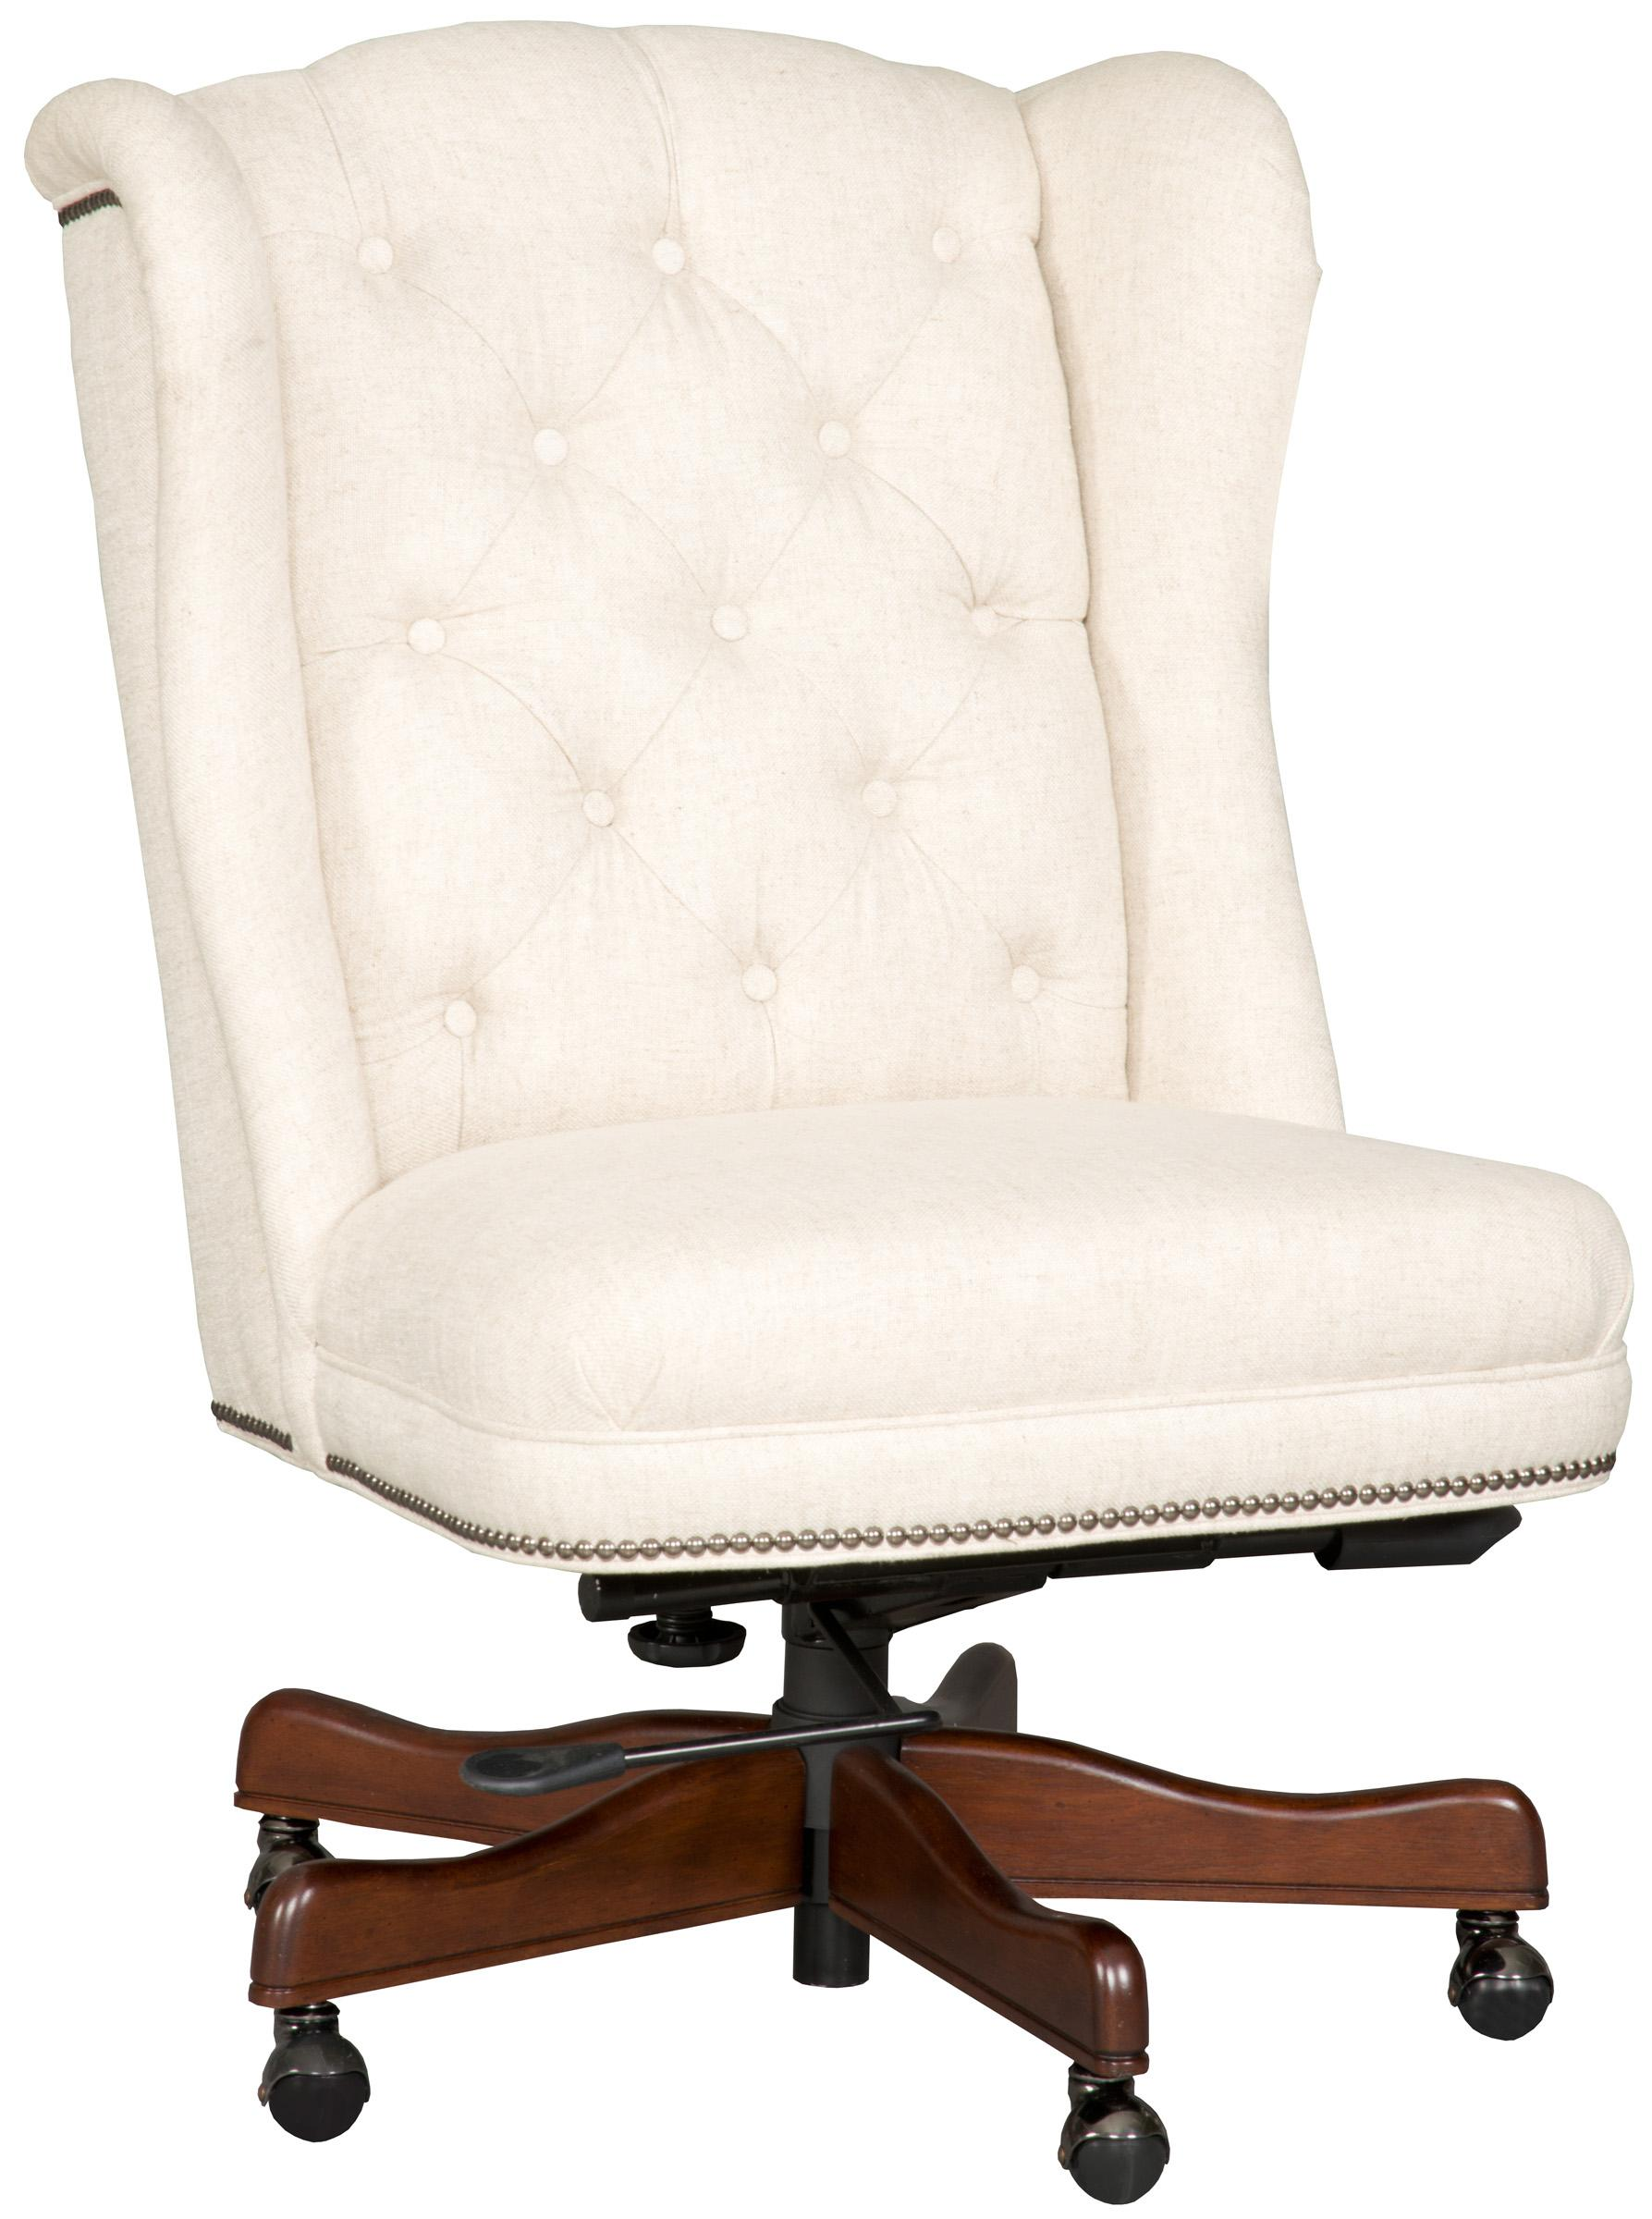 Hooker Furniture Executive Seating Executive Swivel Tilt Chair - Item Number: EC401-080